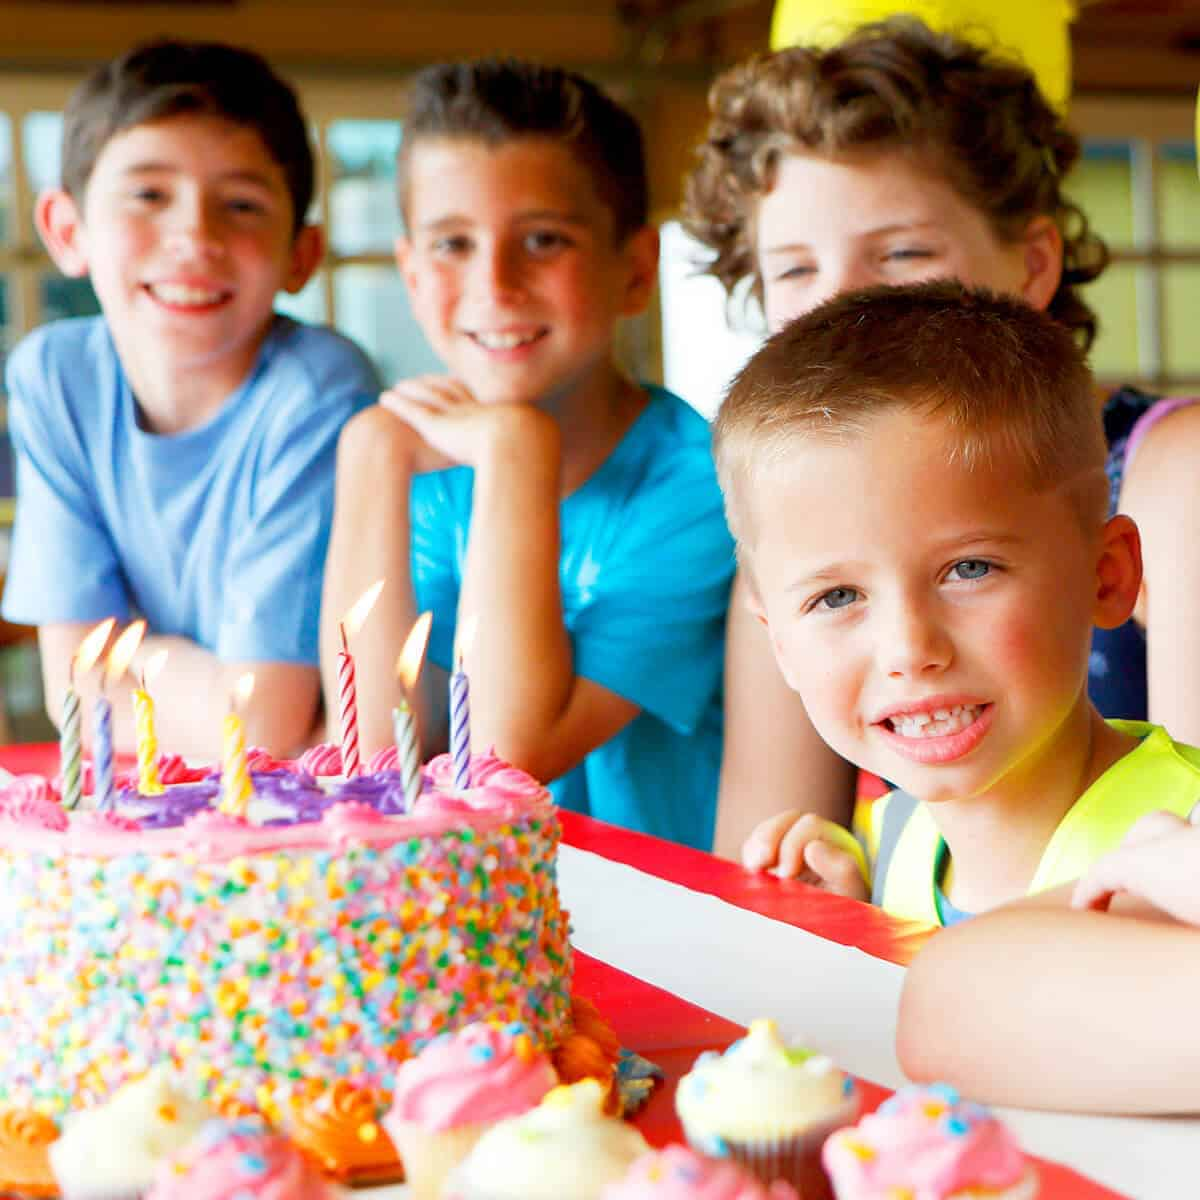 Birthday boy ready to blow out candles on colorful cake